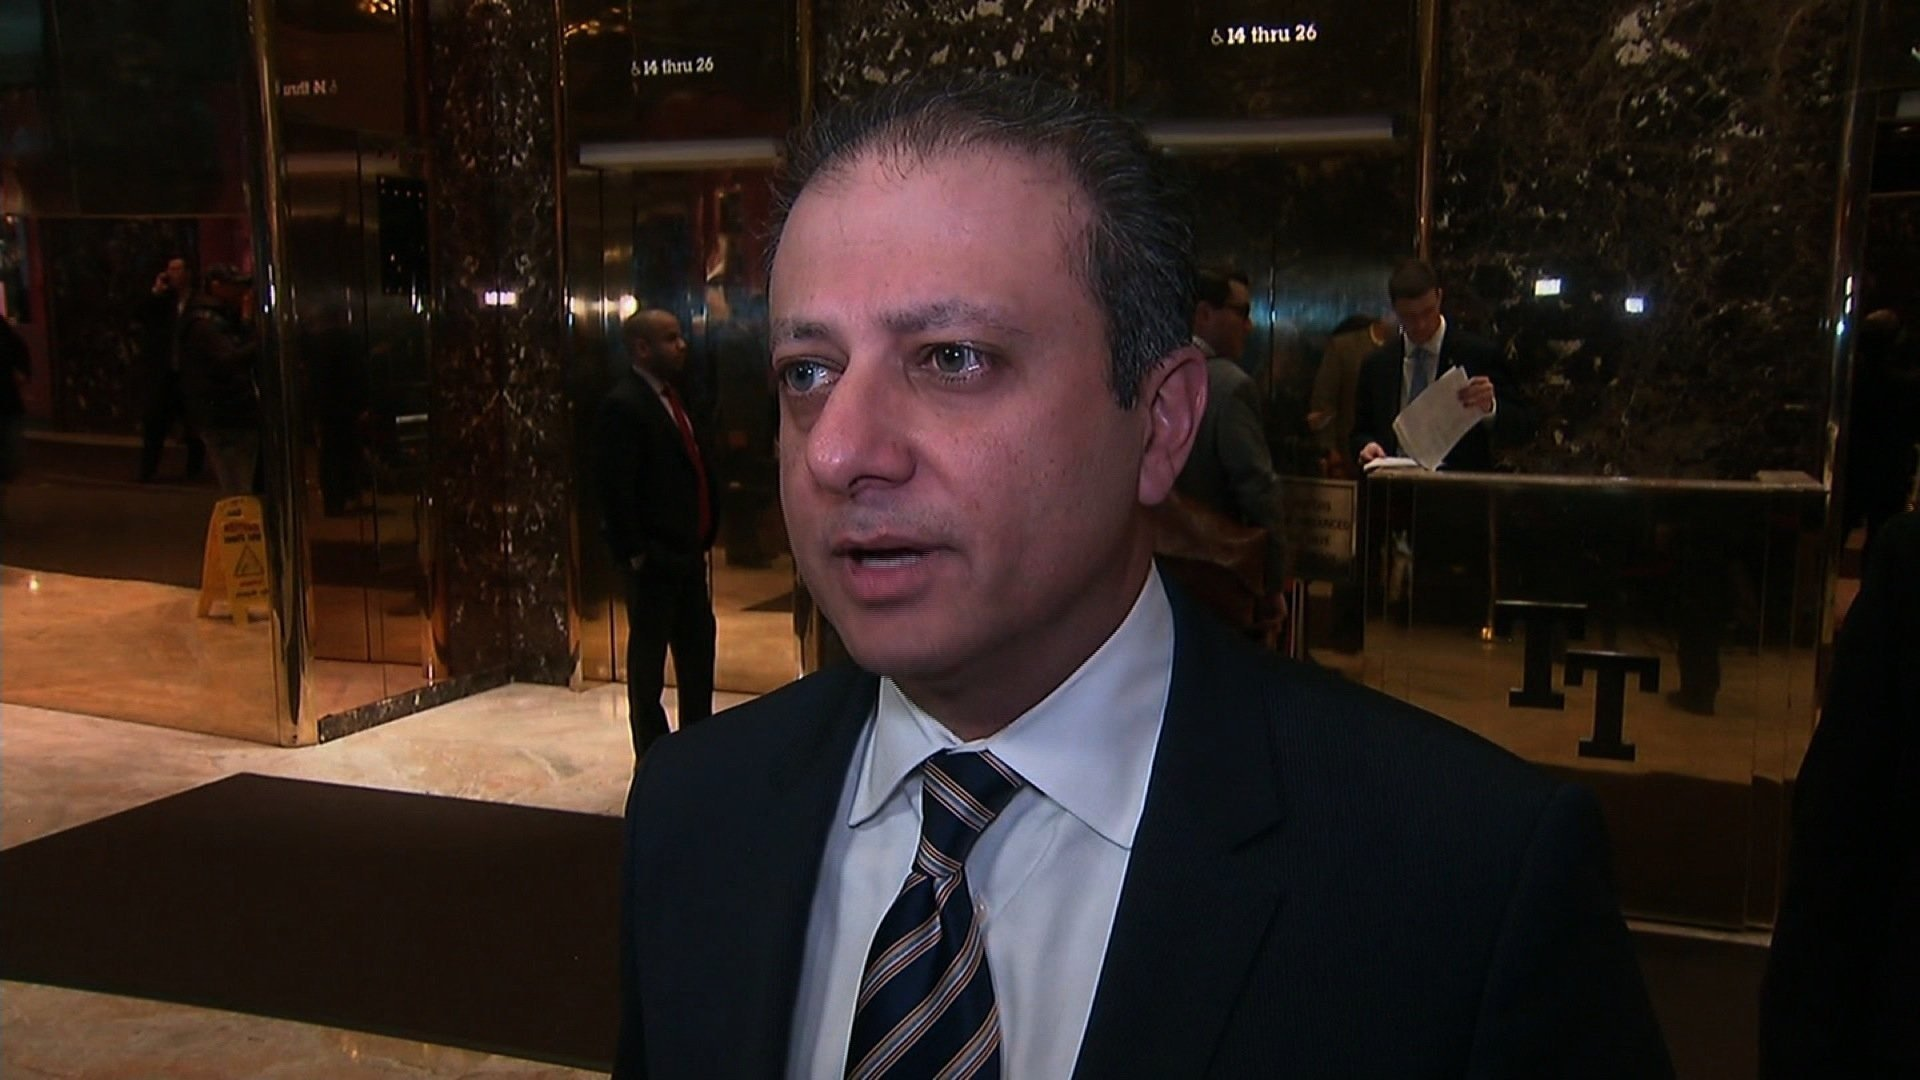 CNN Hires Preet Bharara, the Former Federal Prosecutor Fired by Trump